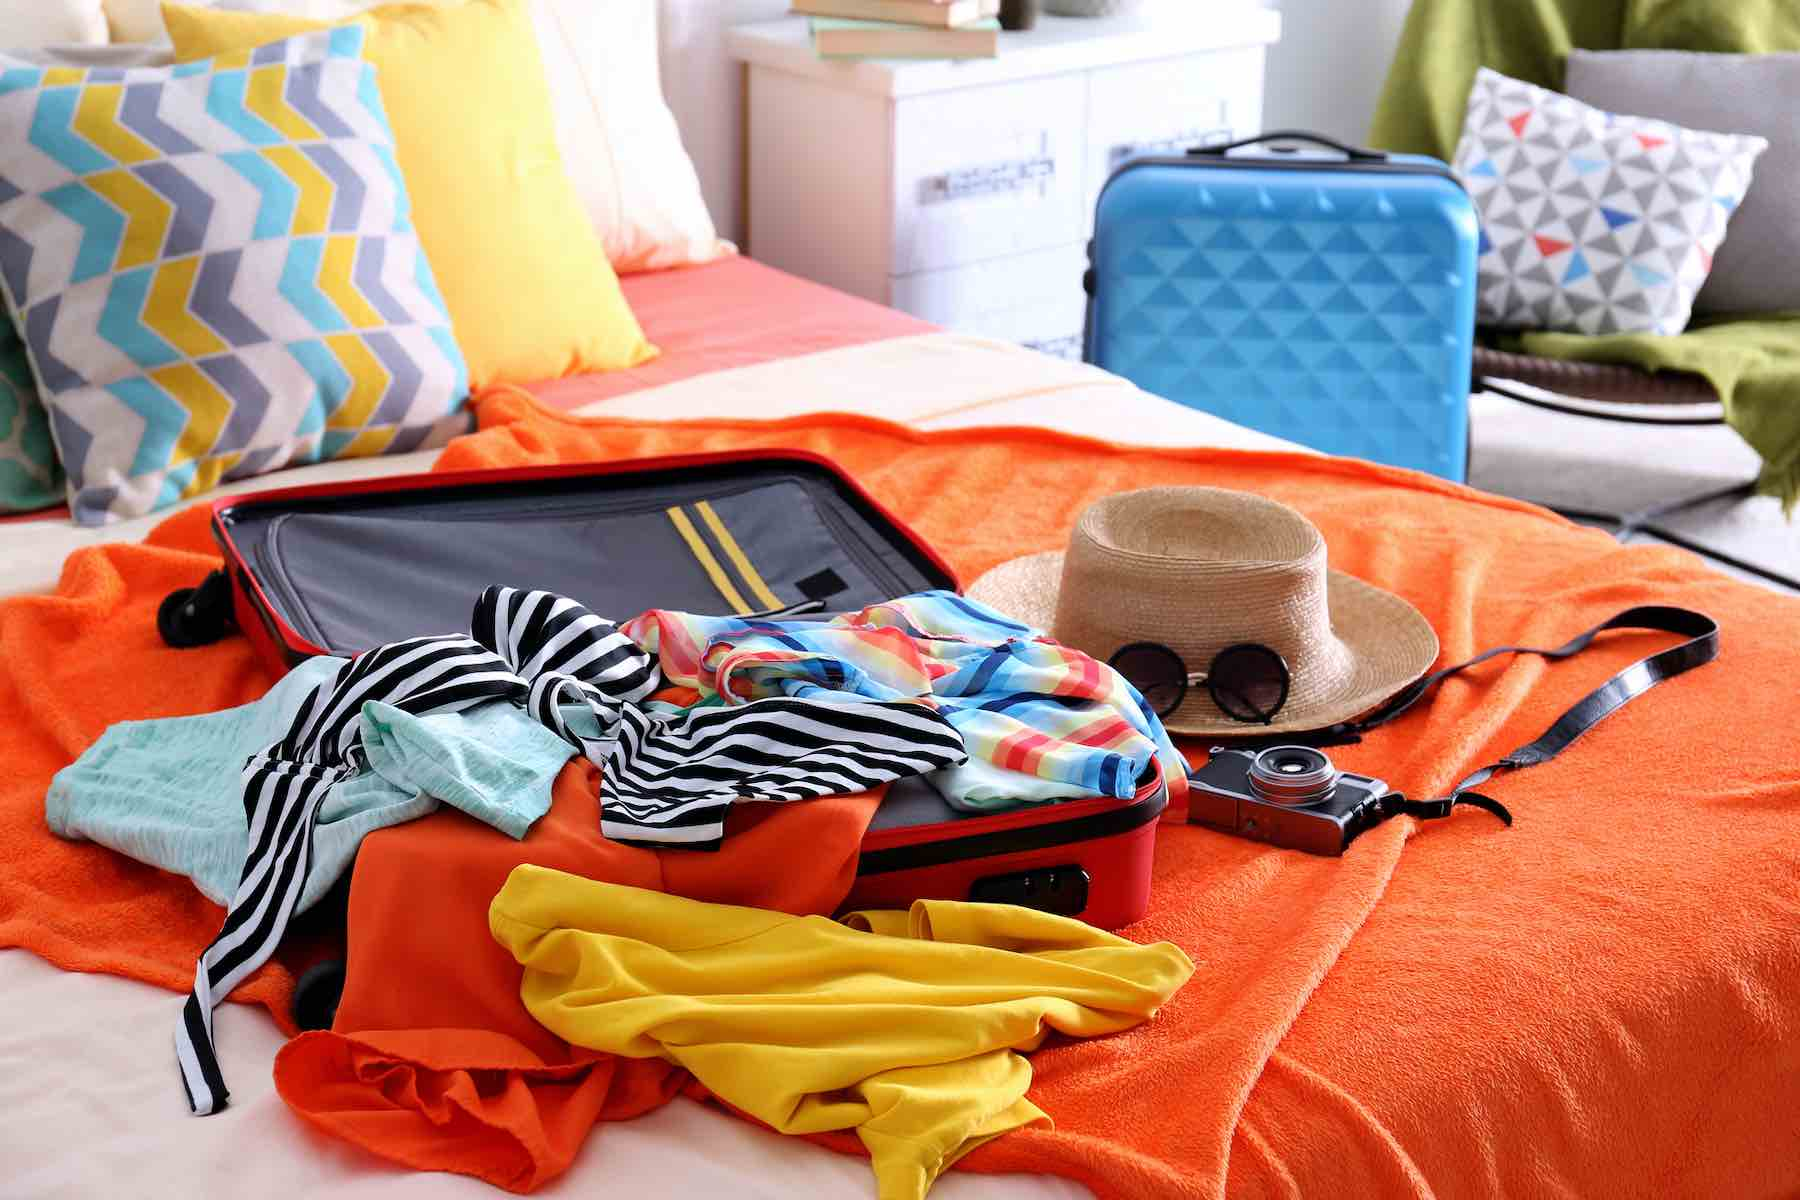 Find out the best Kauai packing list for families by top Hawaii blog Hawaii Travel with Kids. Image of Open suitcase with clothes and personal things packed for traveling